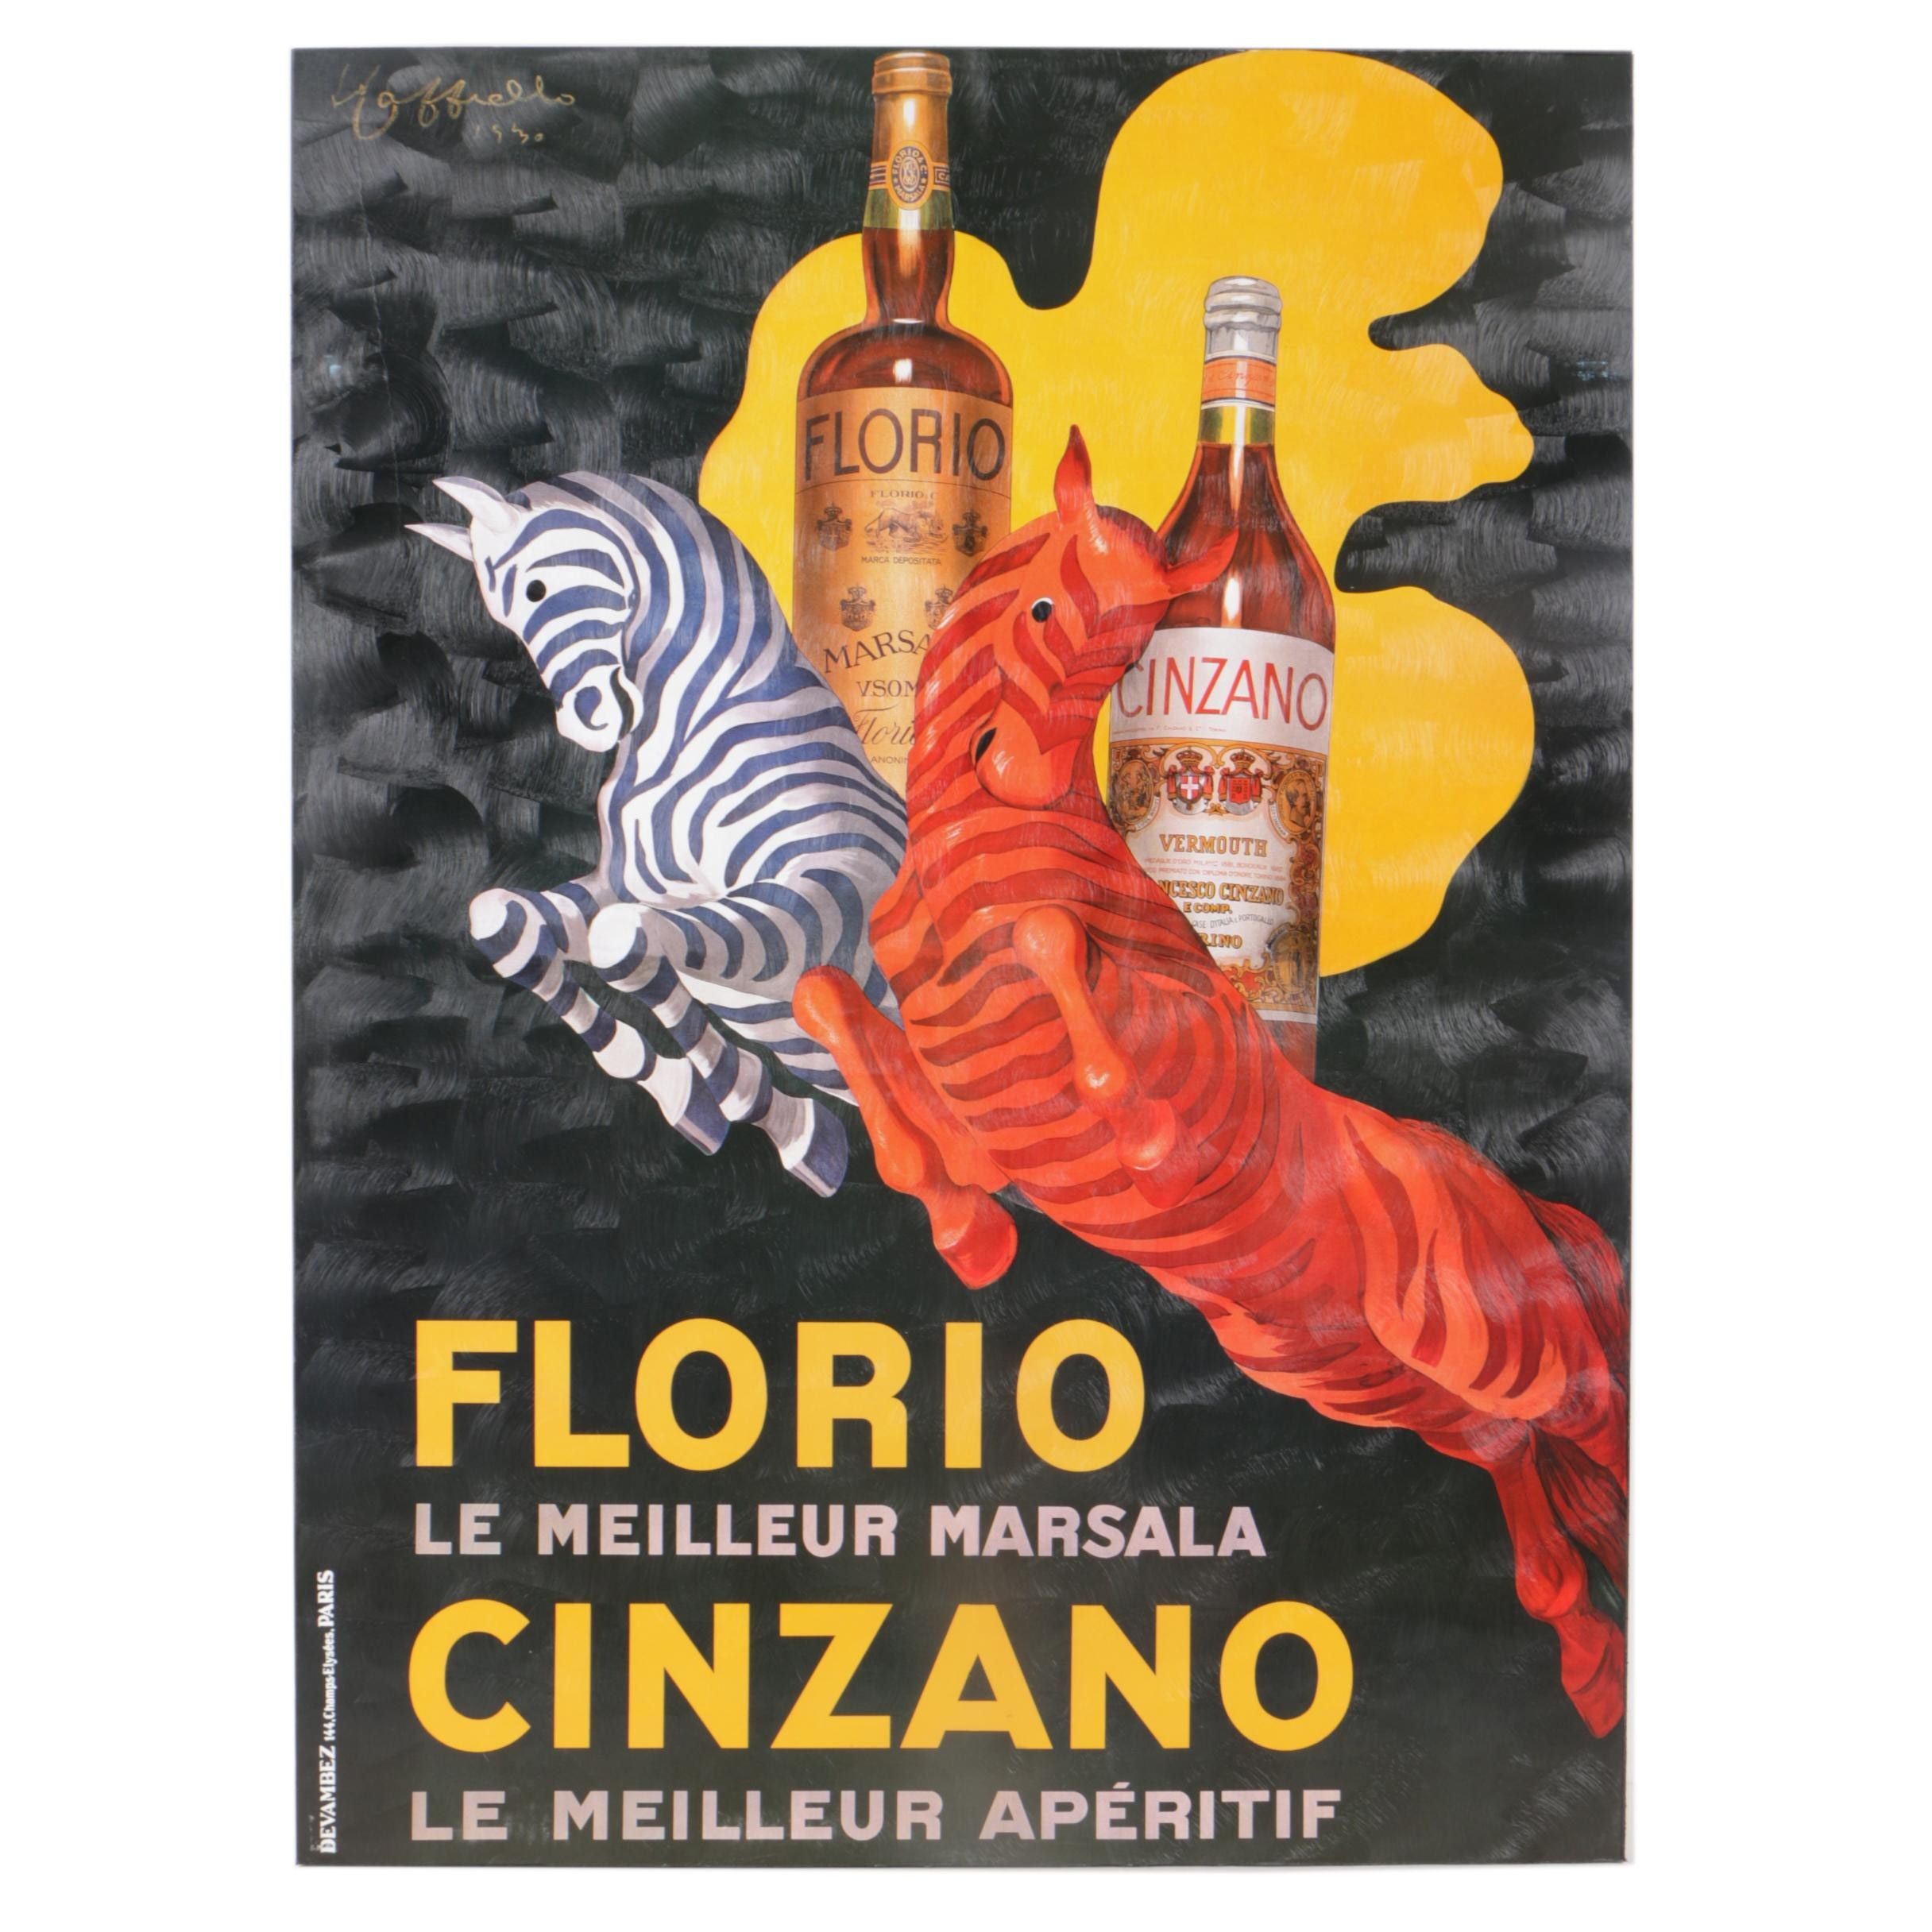 Offset Lithograph After Leonetto Cappiello 1930s Poster for Florio and Cinzano